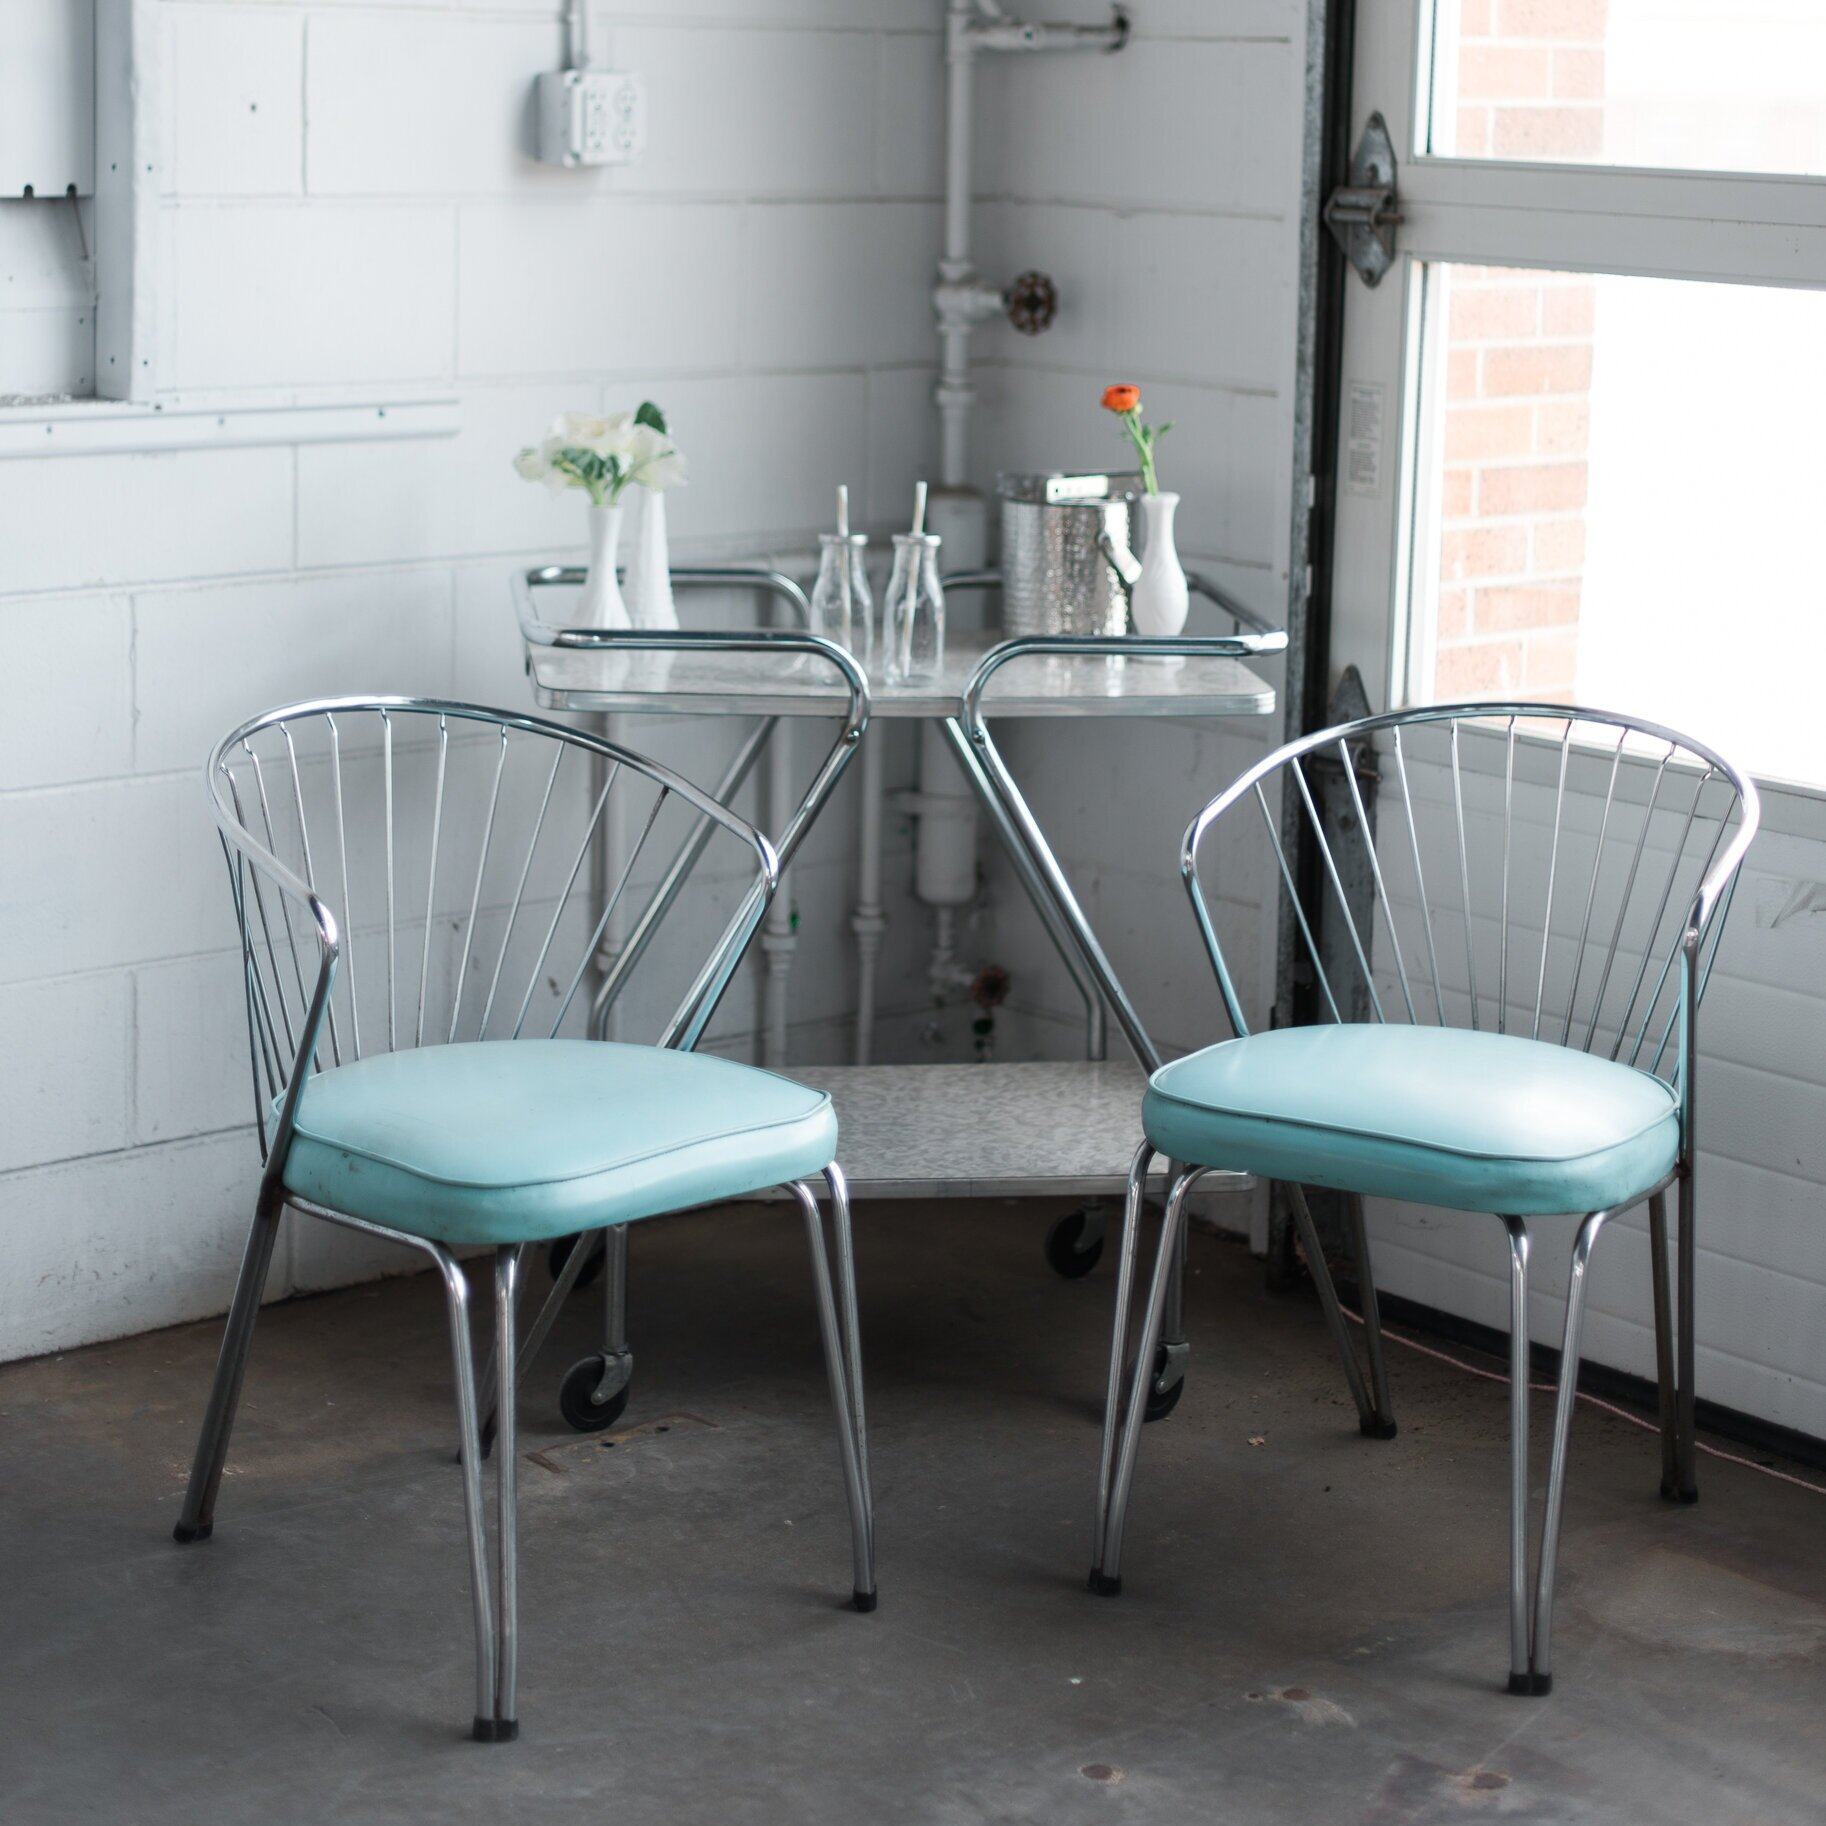 Chrome Turquoise Chair